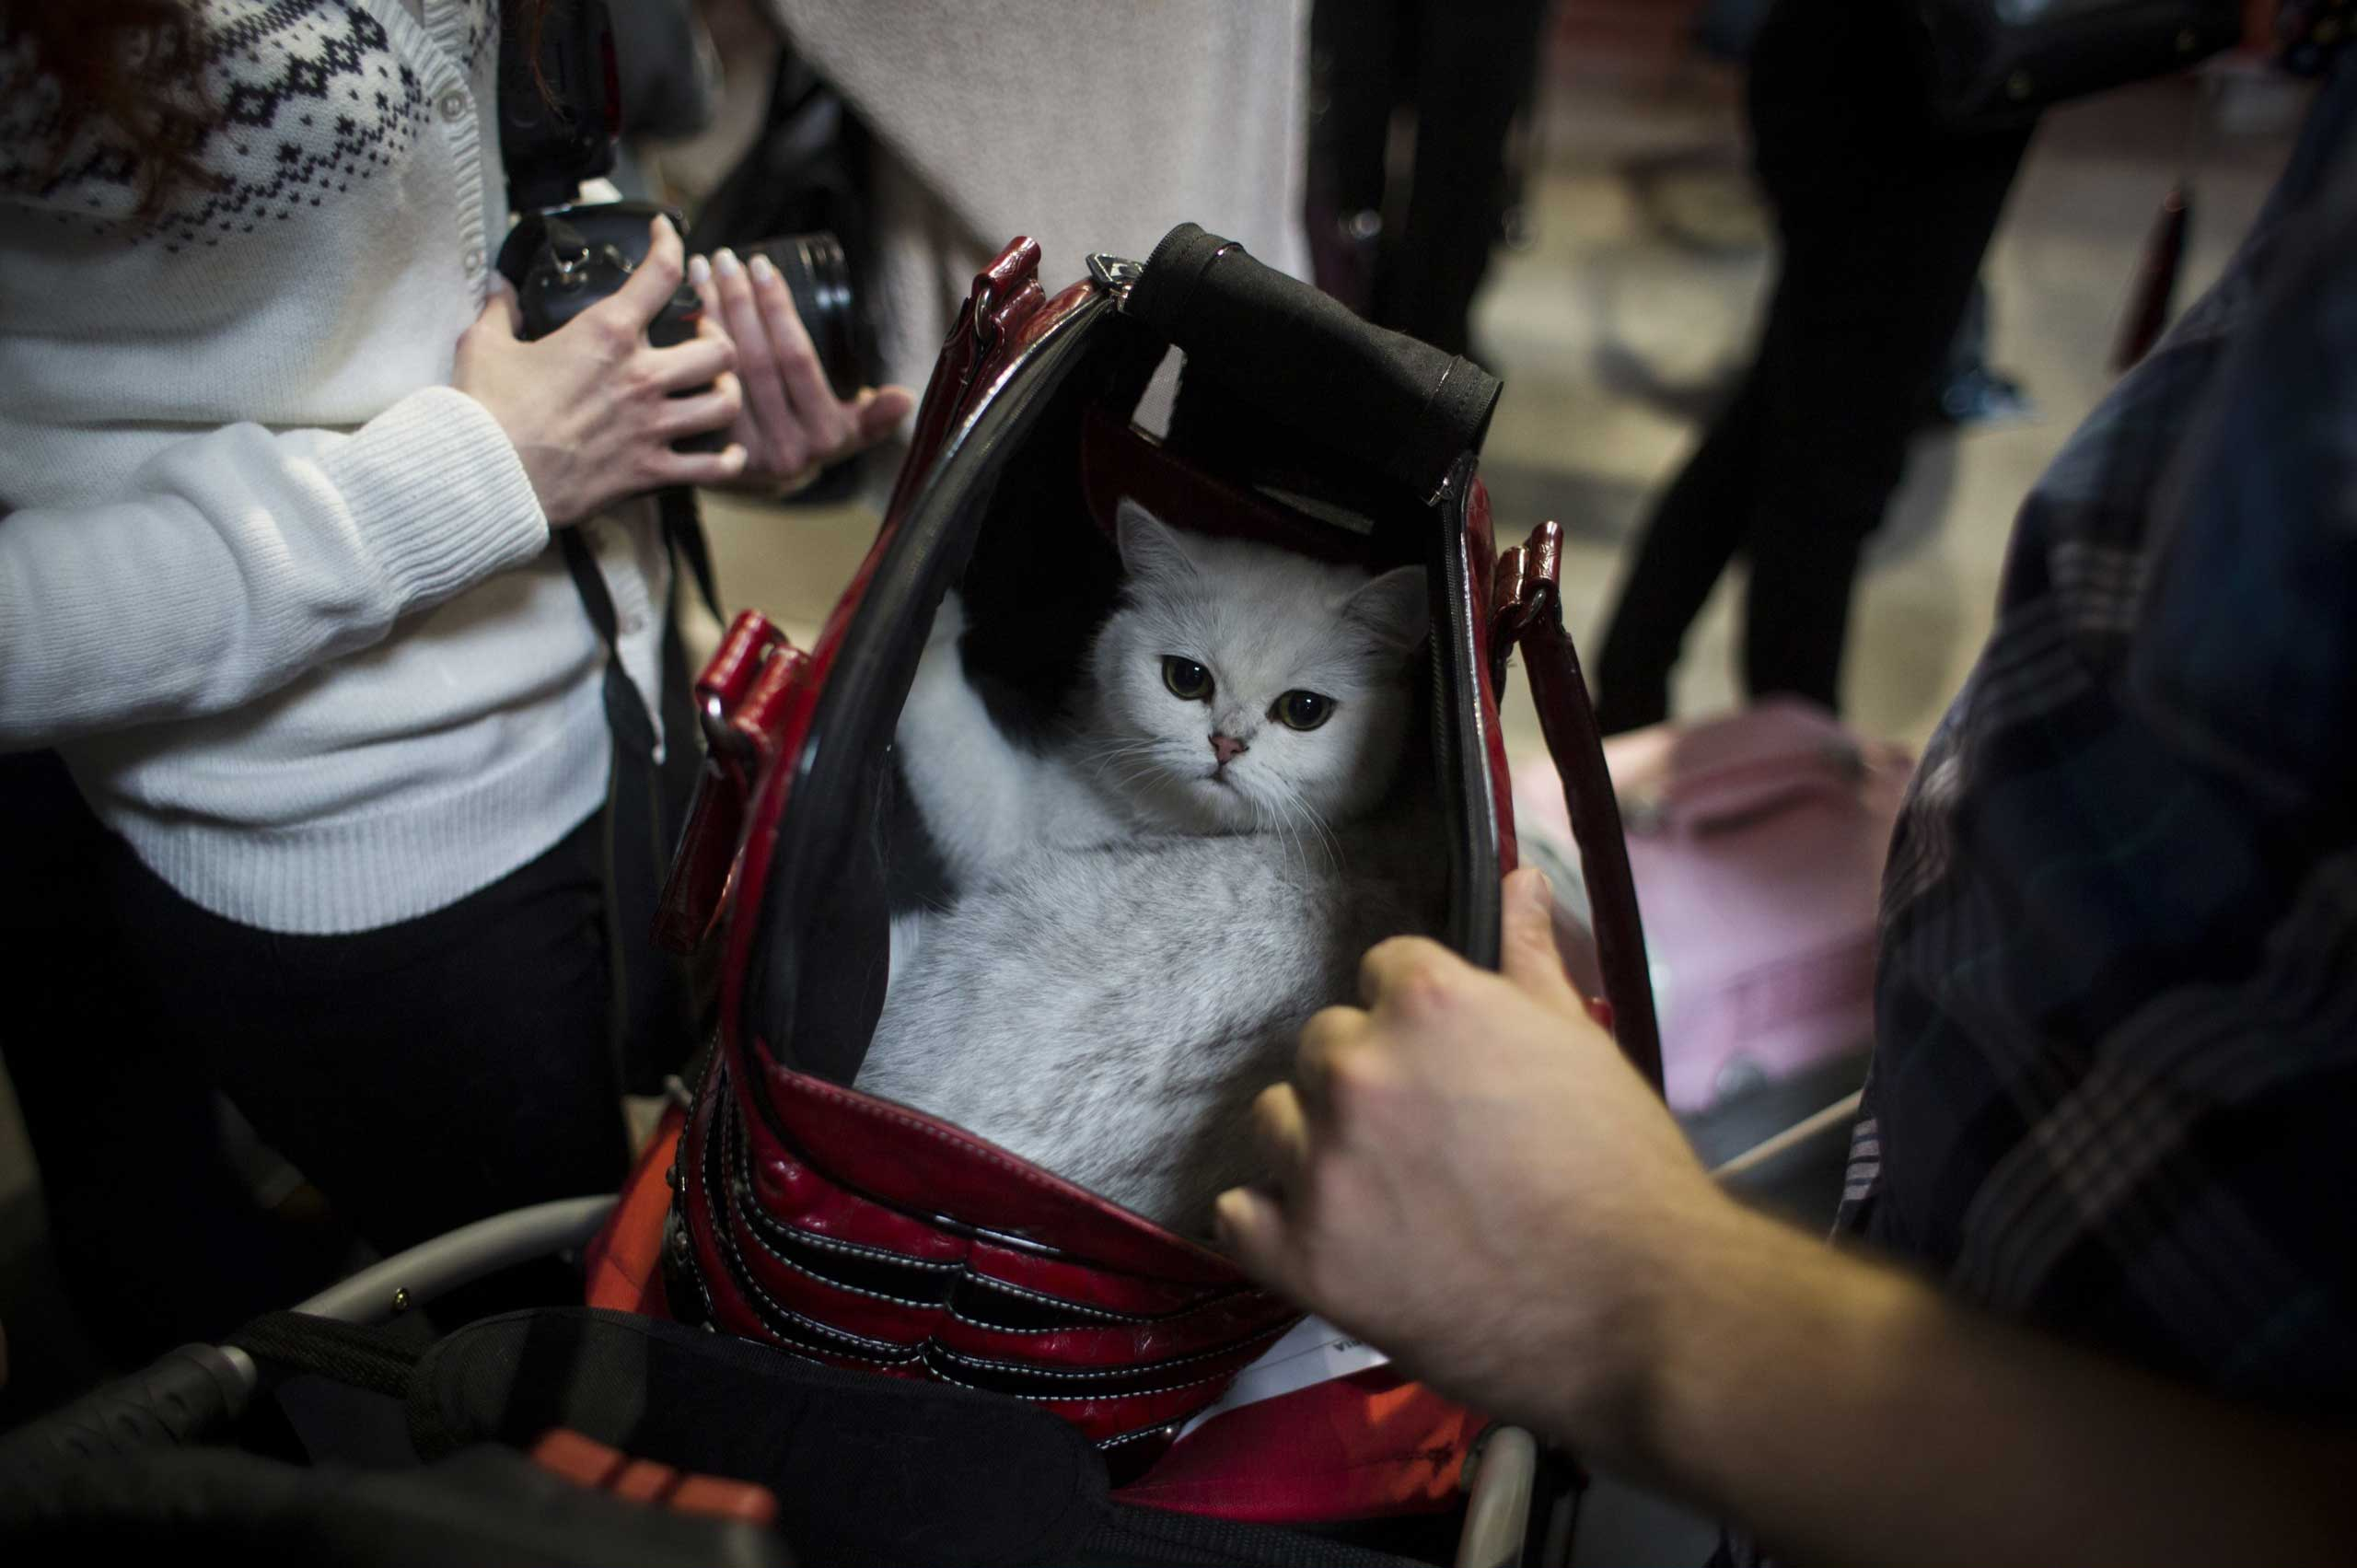 A cat is placed in the transport bag during the World Cat Show 2014 in Prague on Oct. 25, 2014.